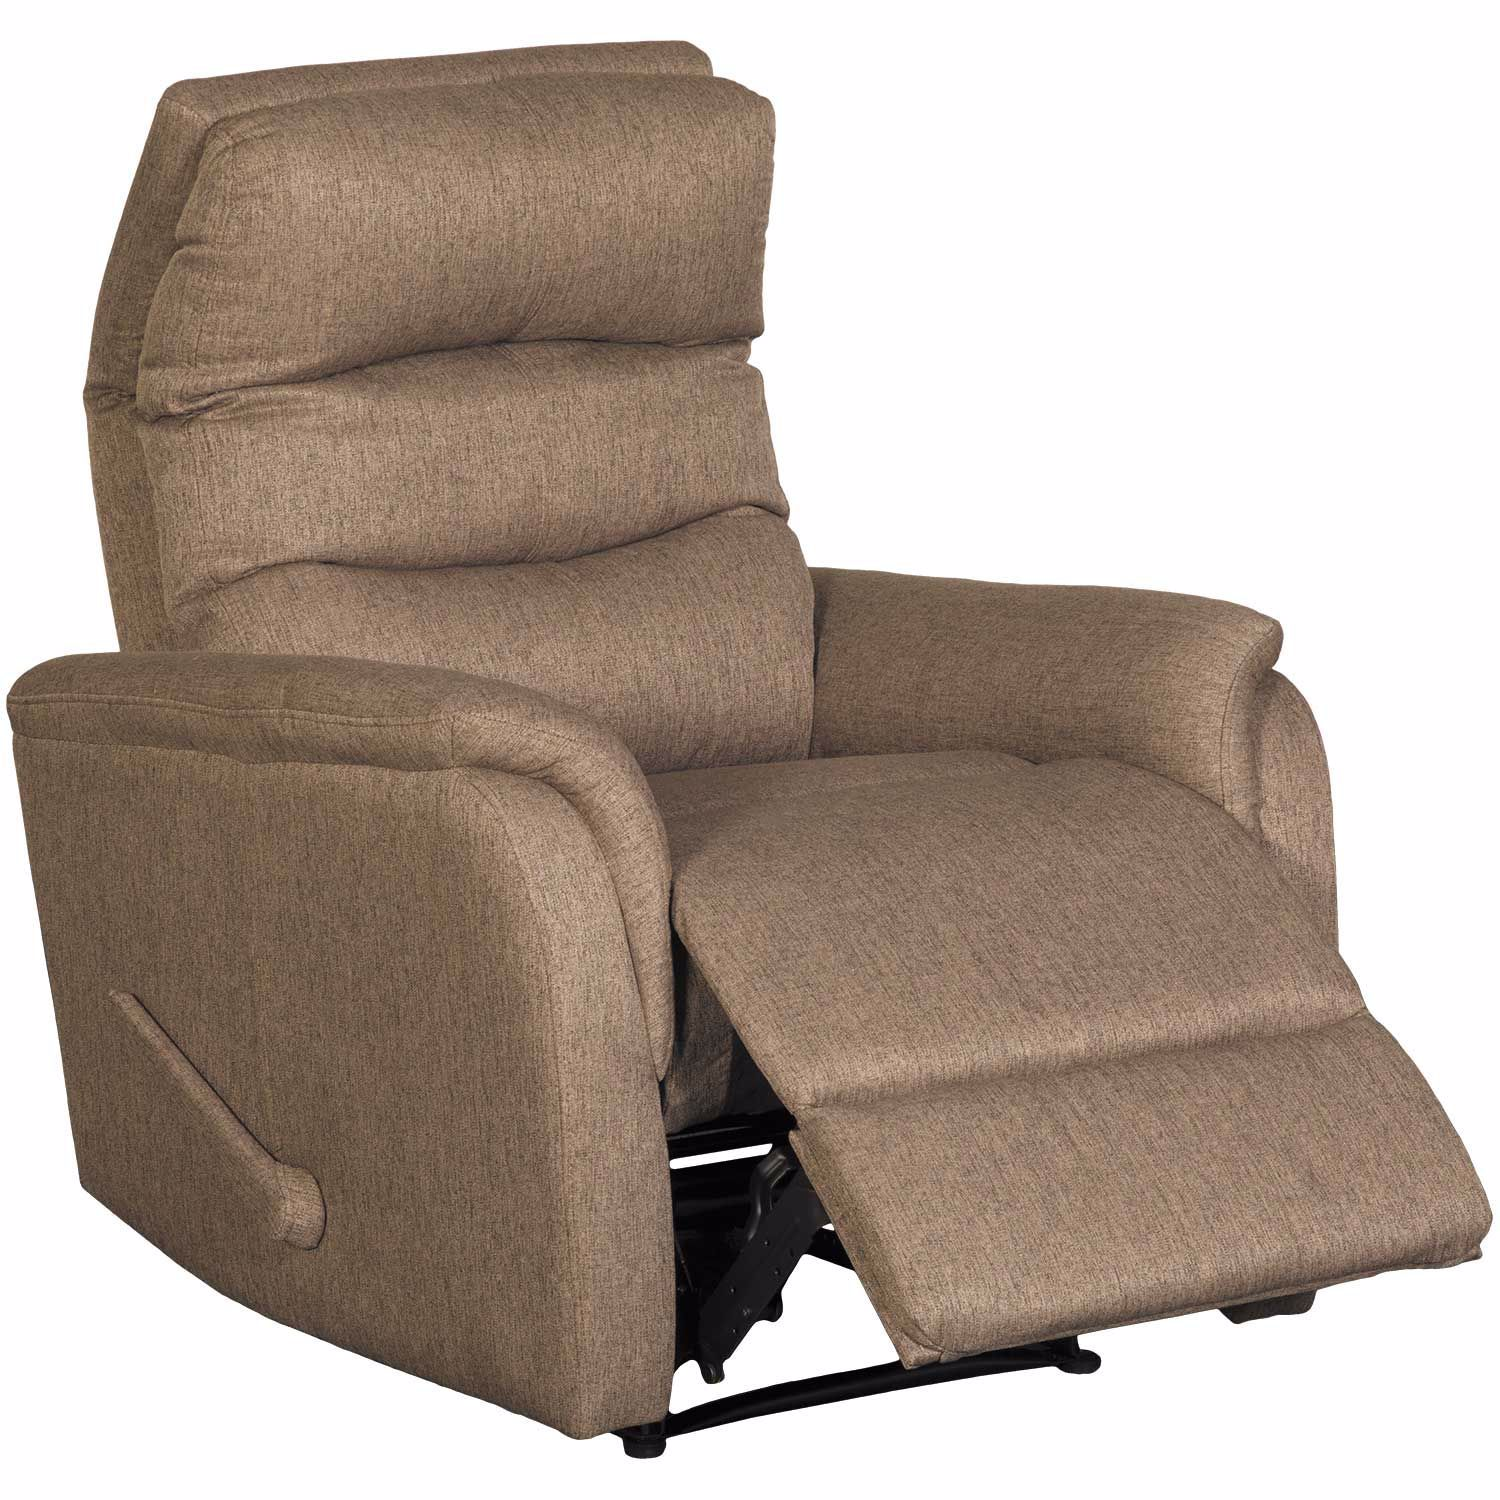 Picture of Wall Saver Brown Recliner